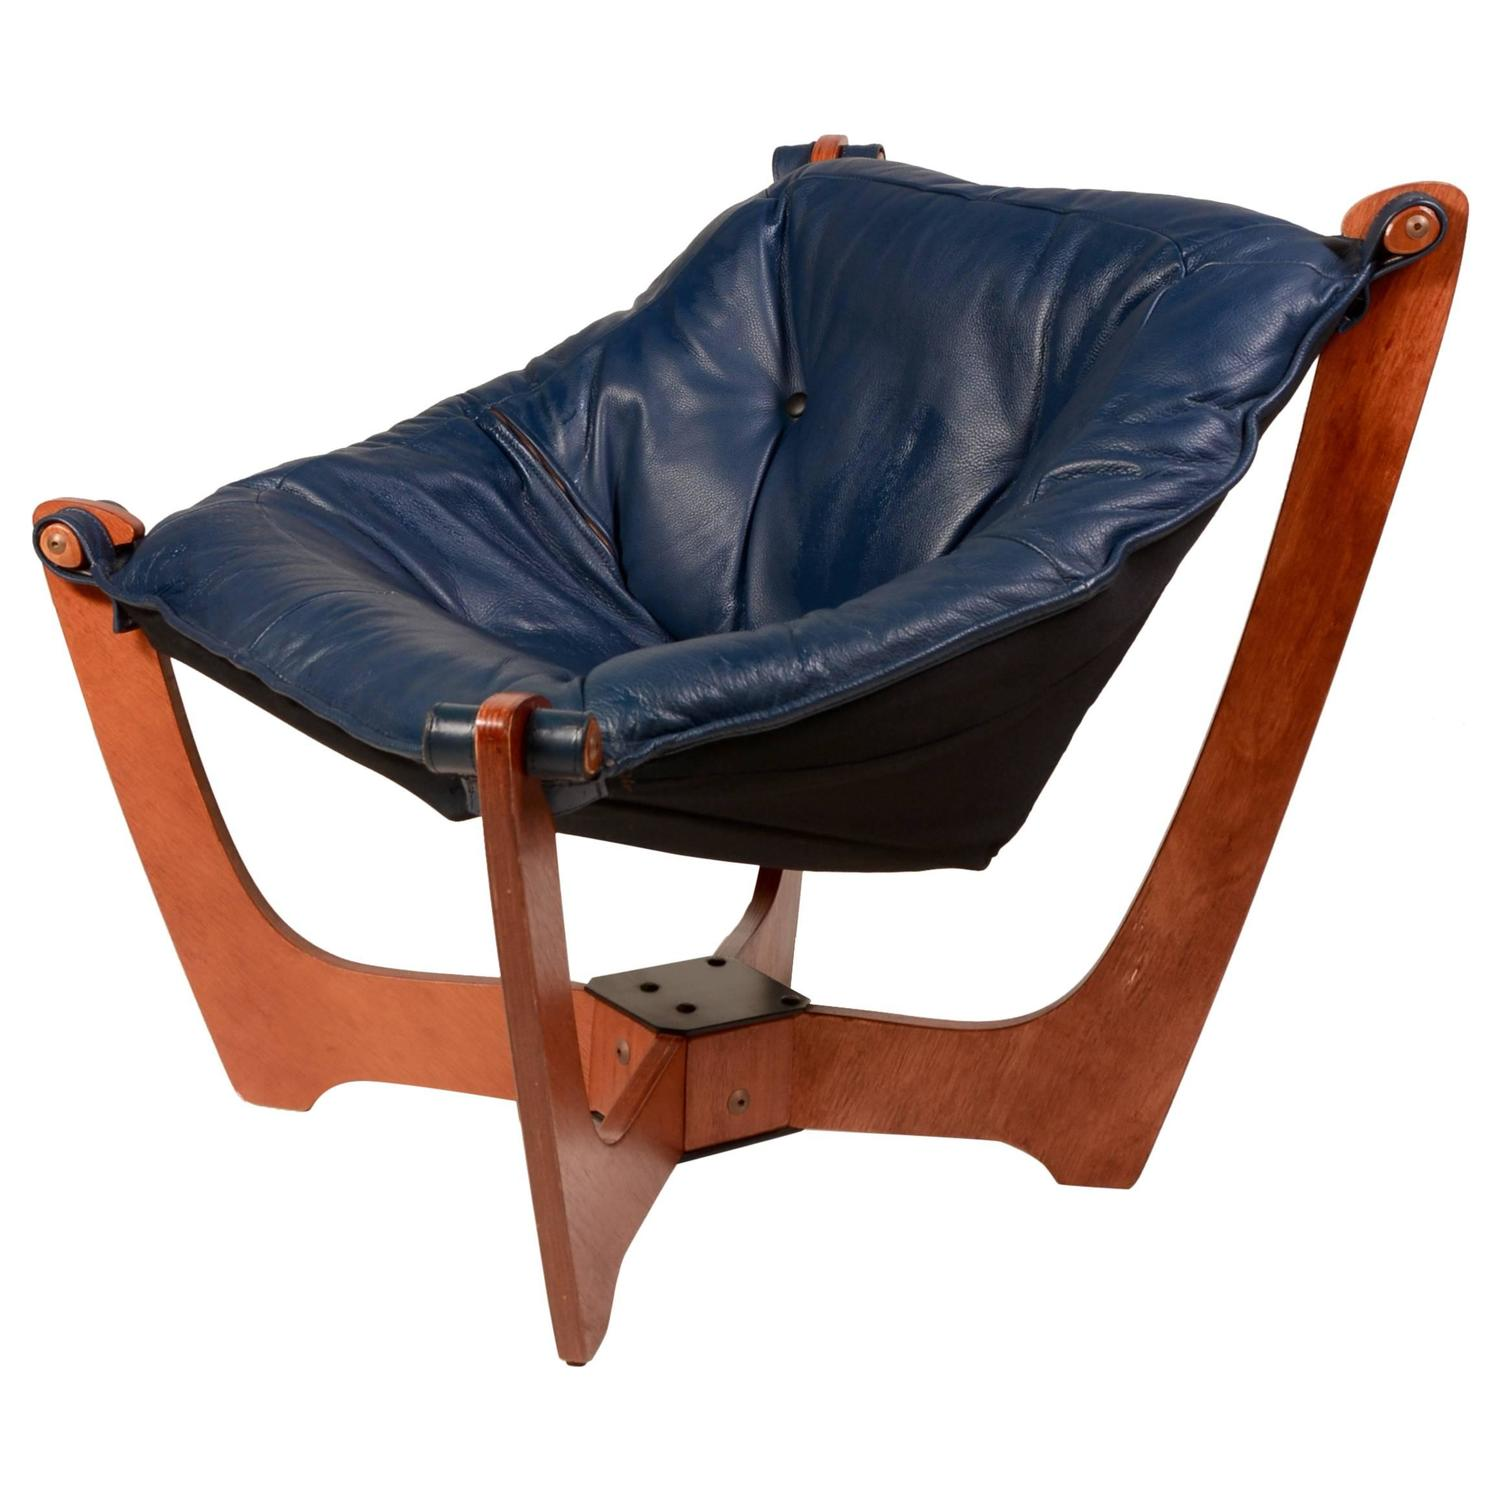 Luna Chair Odd Knutsen In Blue At 1stdibs